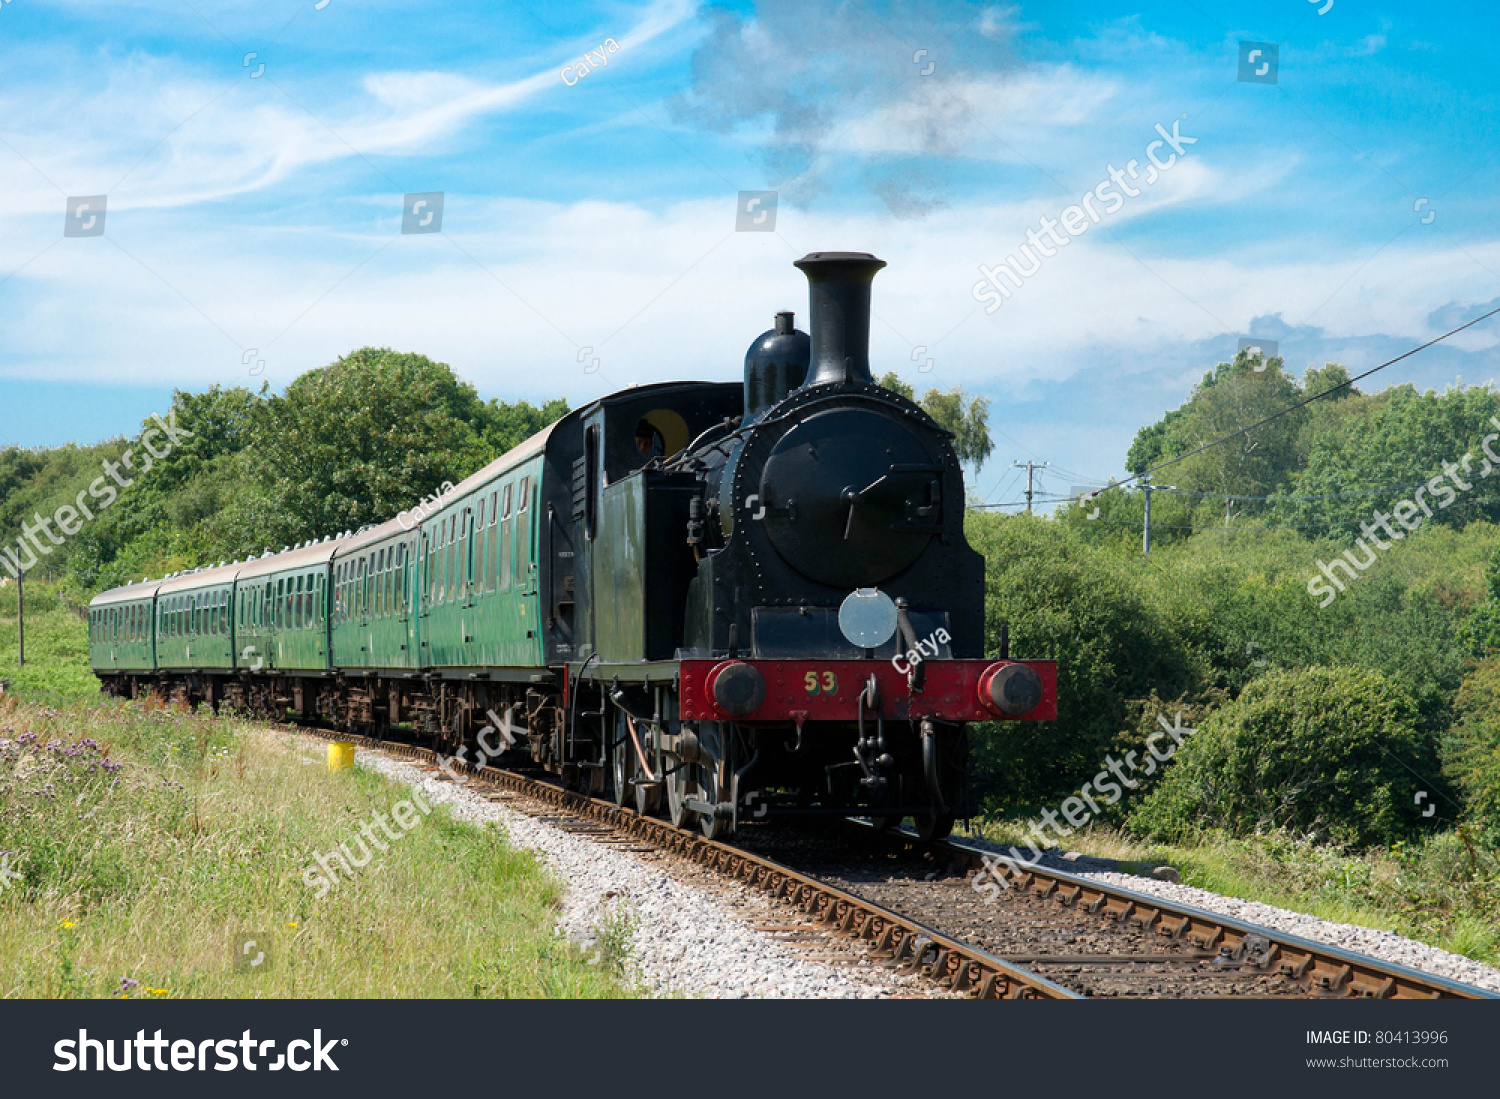 Old Vintage Steam Train Green Wagons Stock Photo 80413996